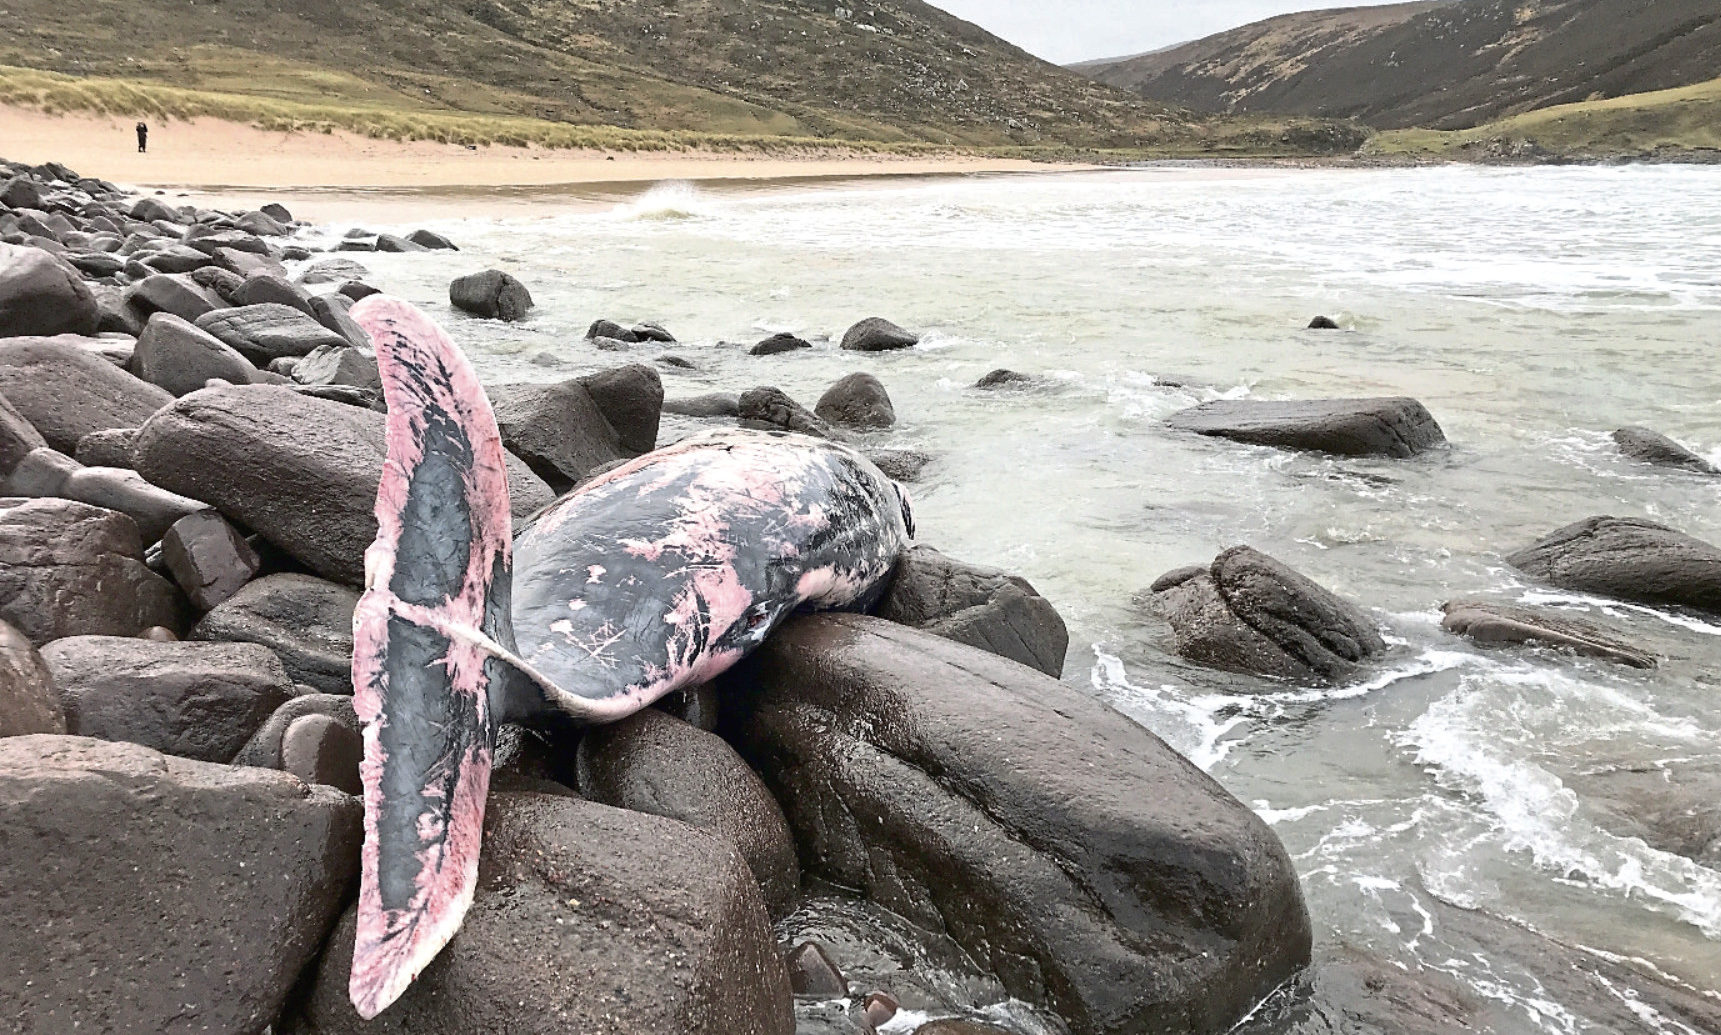 The female True's beaked whale was found at Kearvaig Bay in Sutherland.